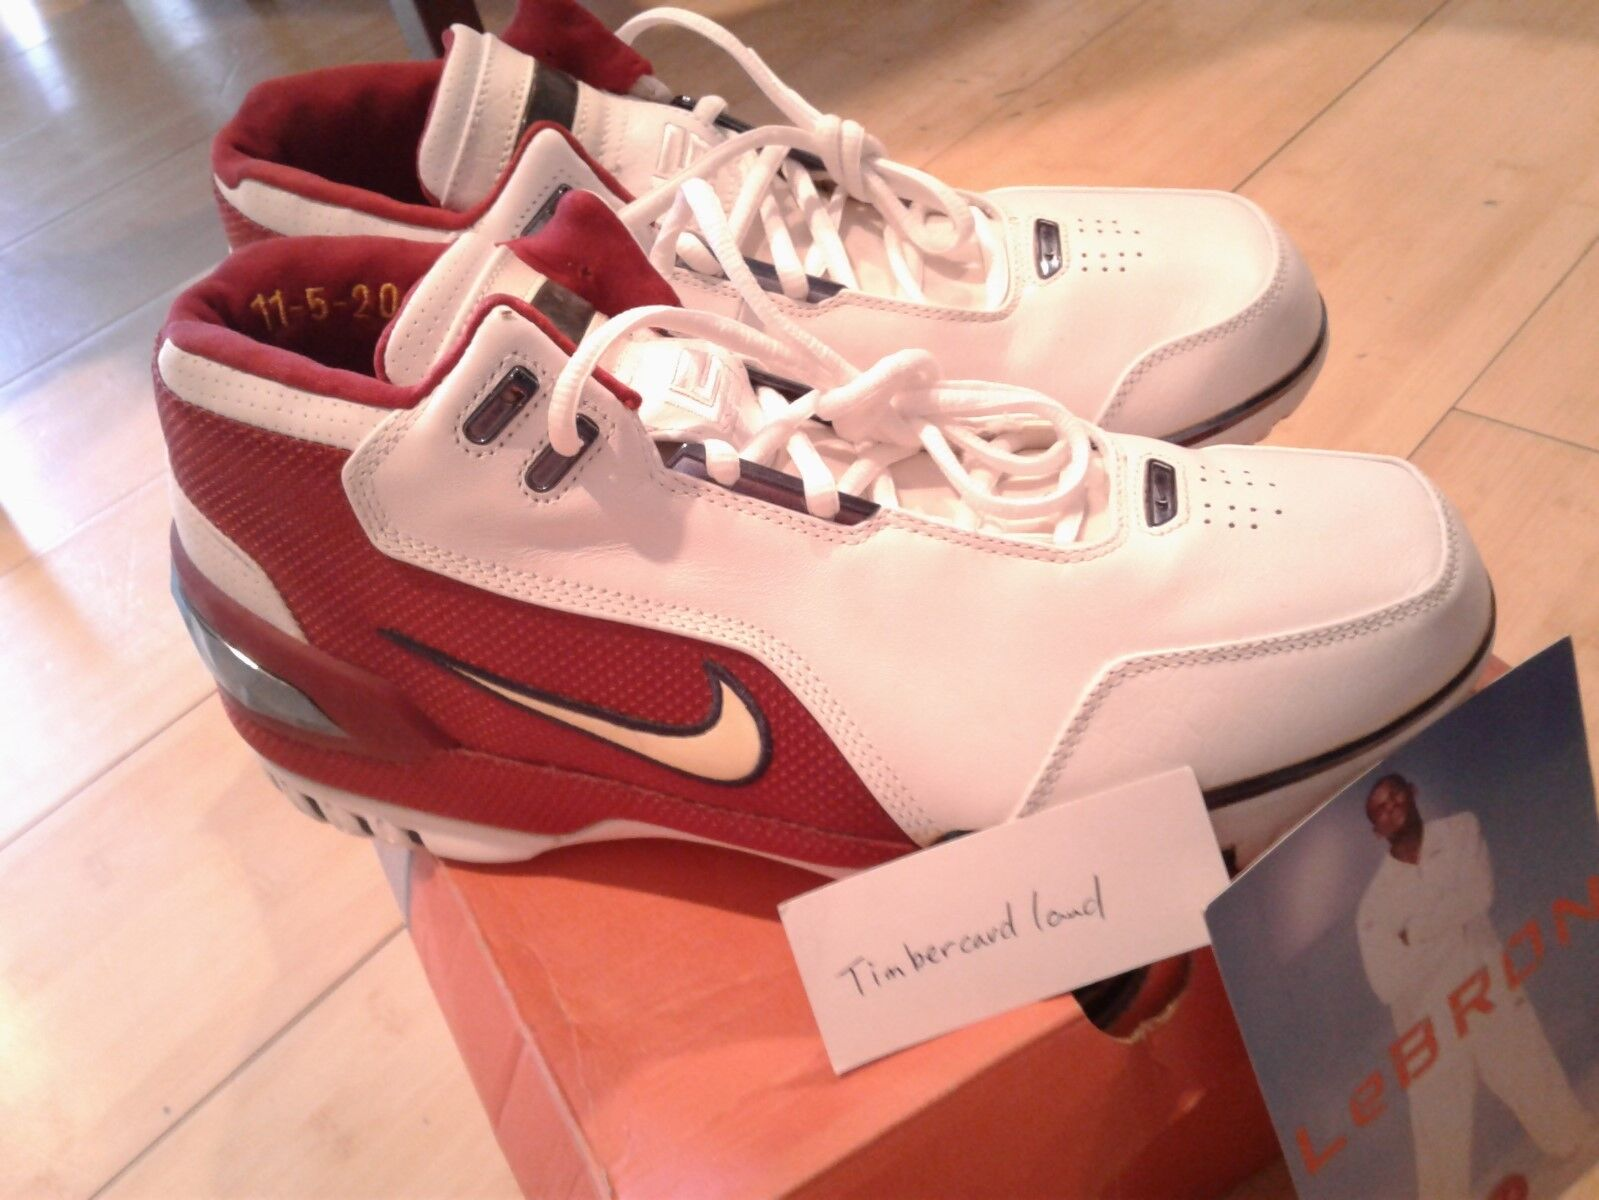 NIKE LEBRON AIR AIR AIR ZOOM GENERATION 1ST FIRST GAME Dimensione 11 100% AUTHENTIC WITH CARD d7babe